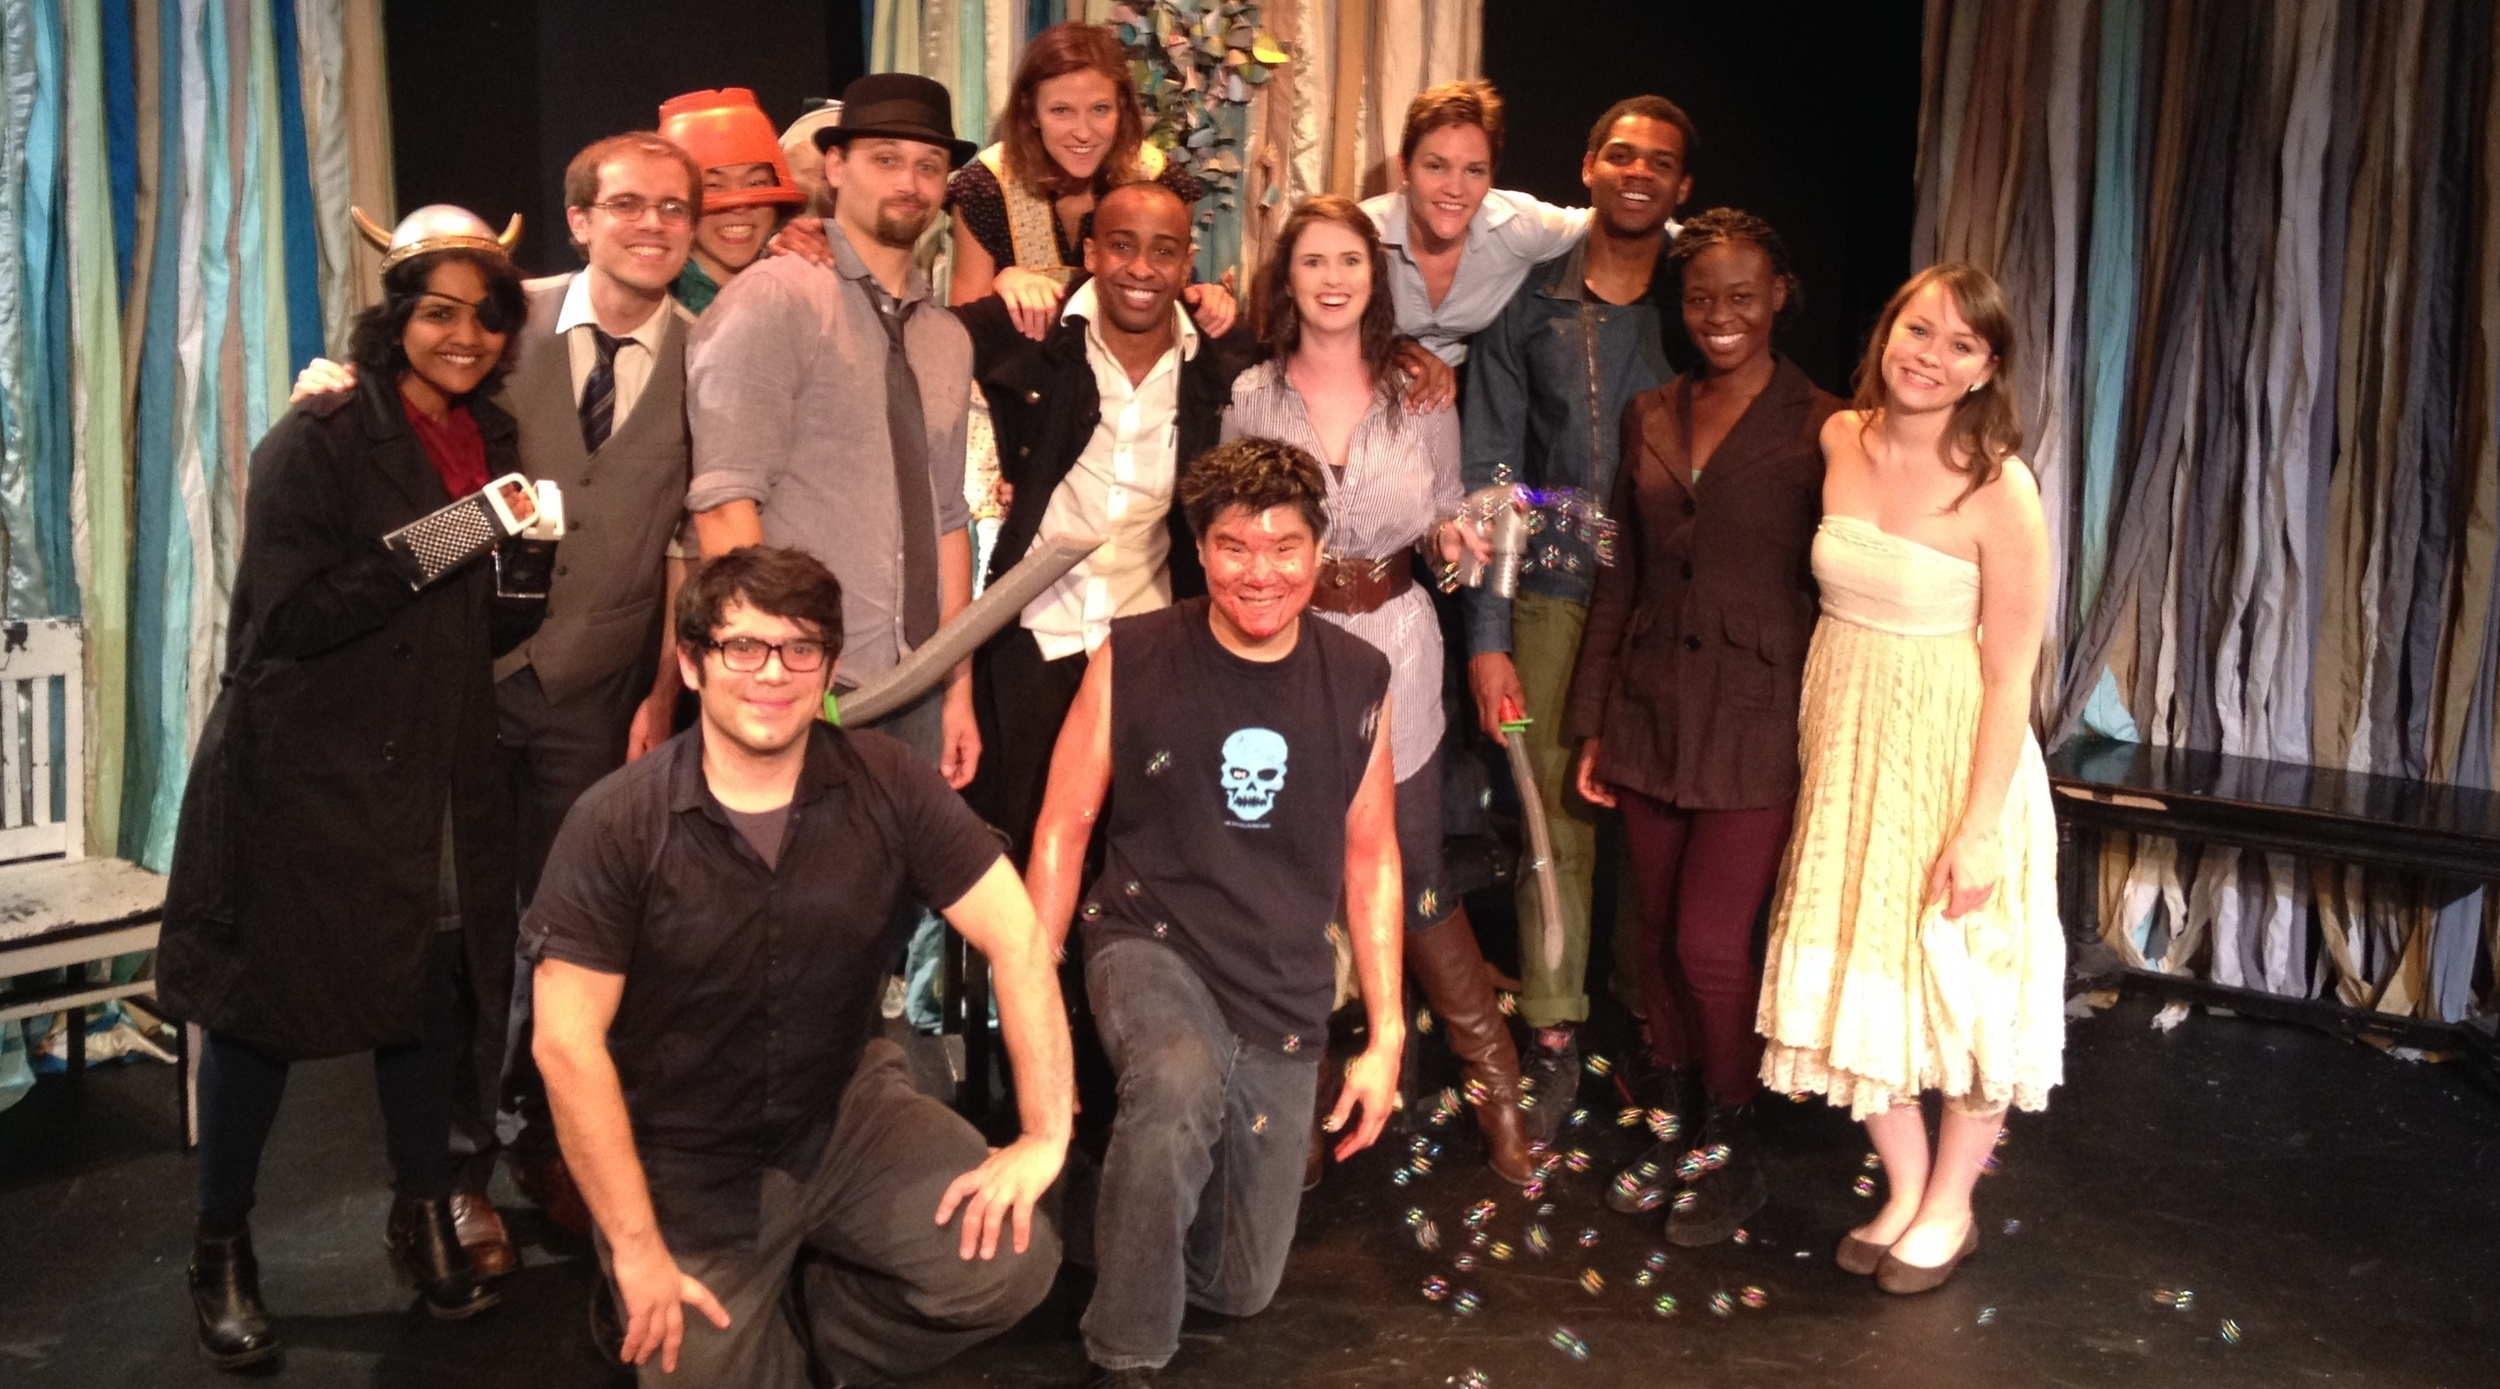 The cast of MUCH ADO ABOUT SOMETHING at the 2014 Hollywood Fringe Festival.